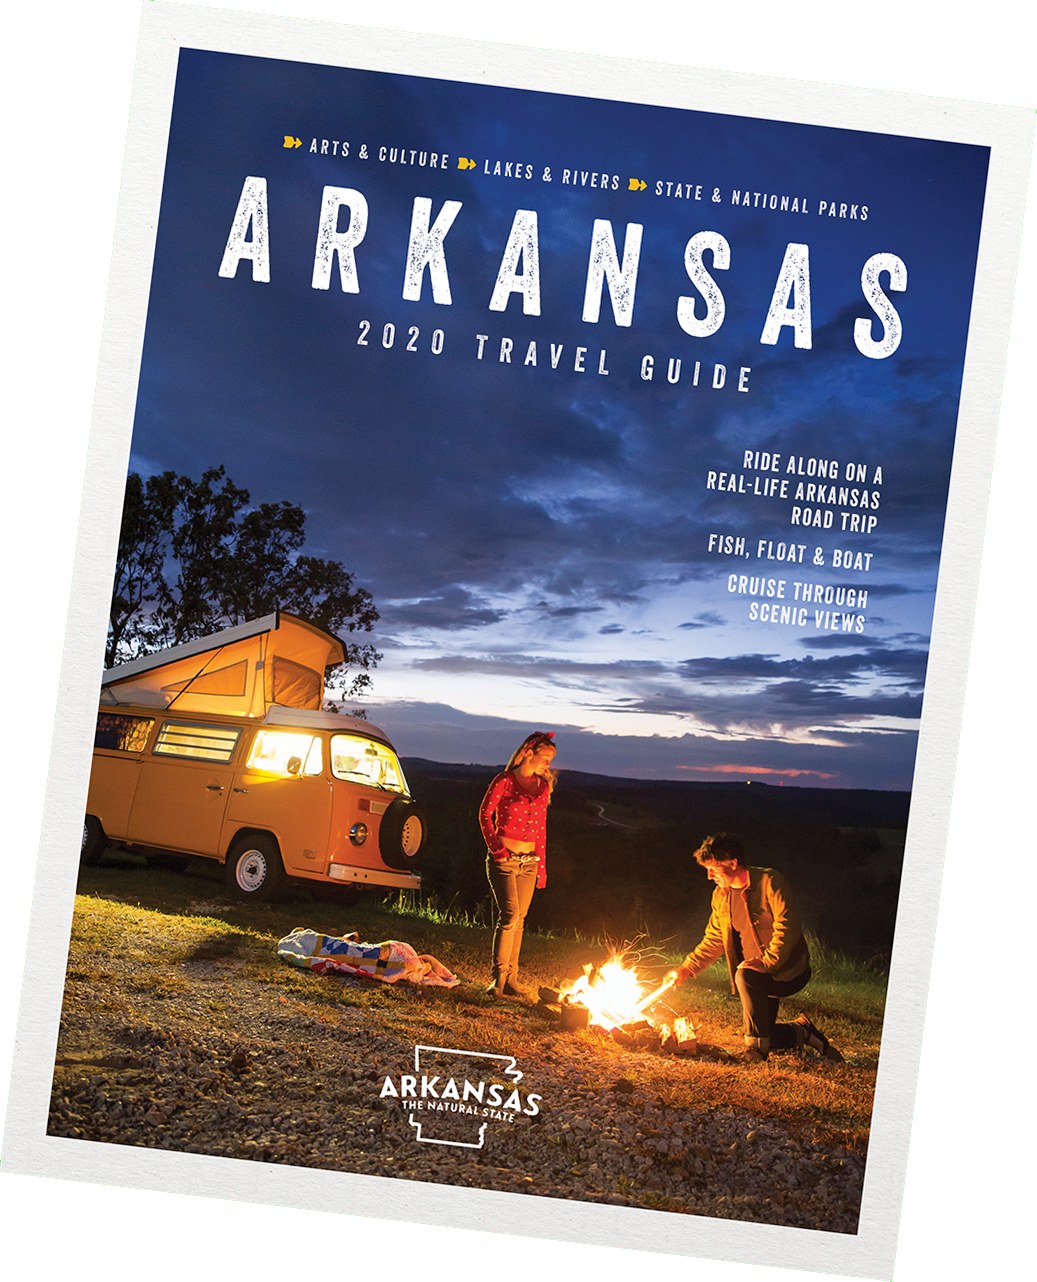 Plan your trip to Arkansas with the 2020 Travel Guide